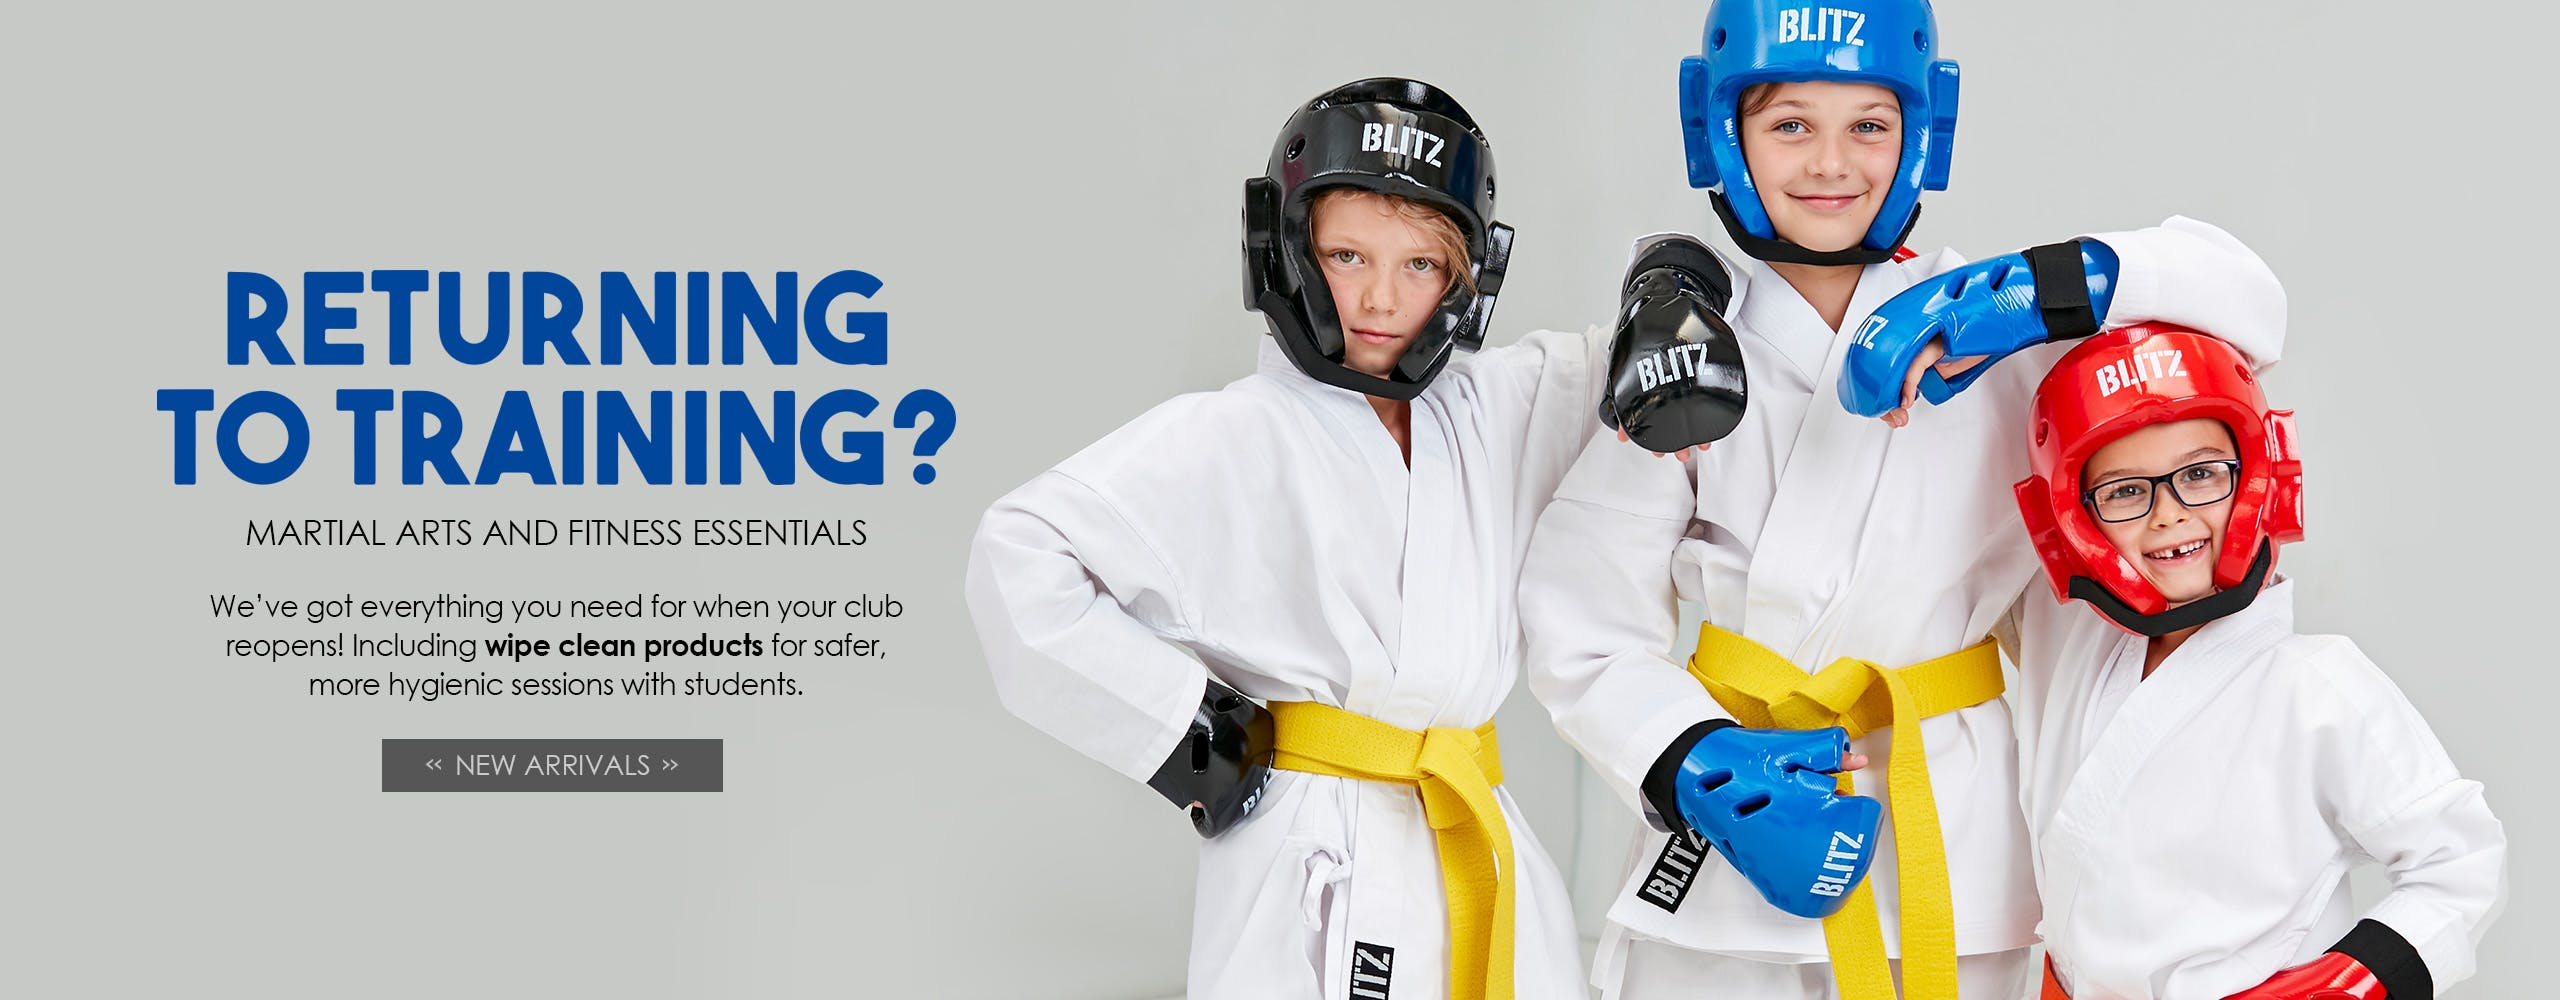 Returning to Training? We've got all your Martial Arts and fitness essentials for when your club reopens!